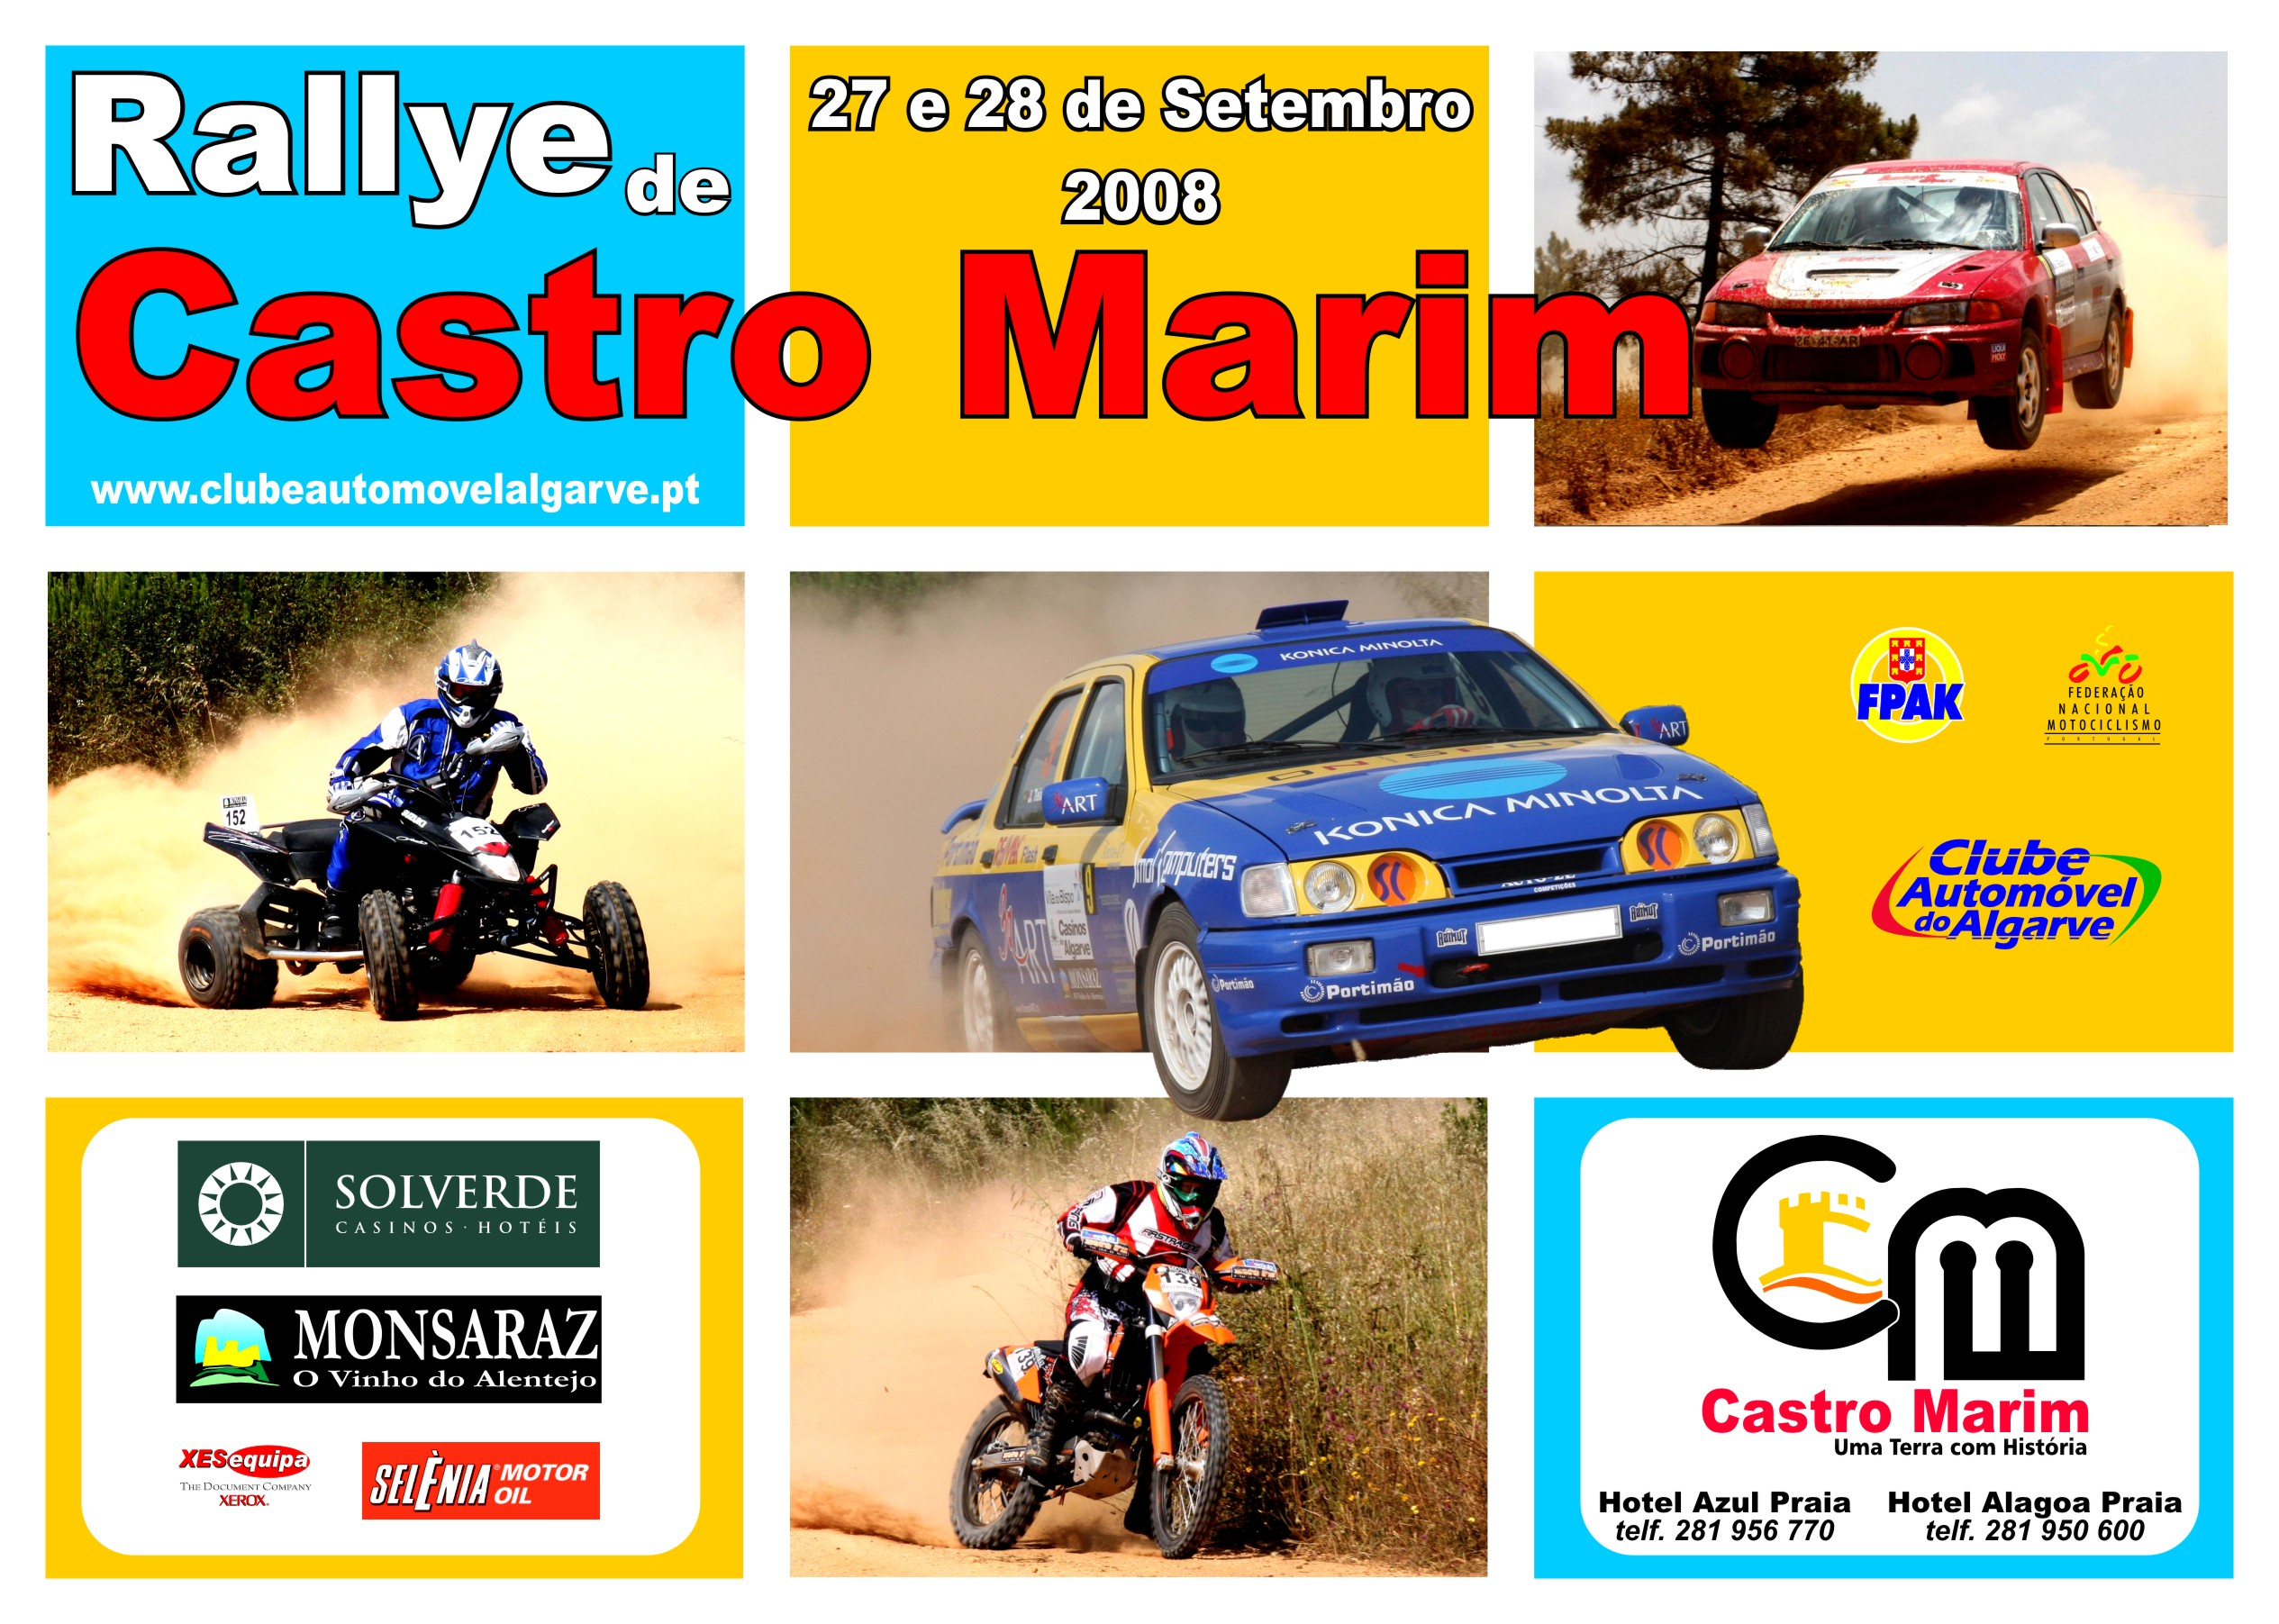 Rallye Casinos do Algarve 2006